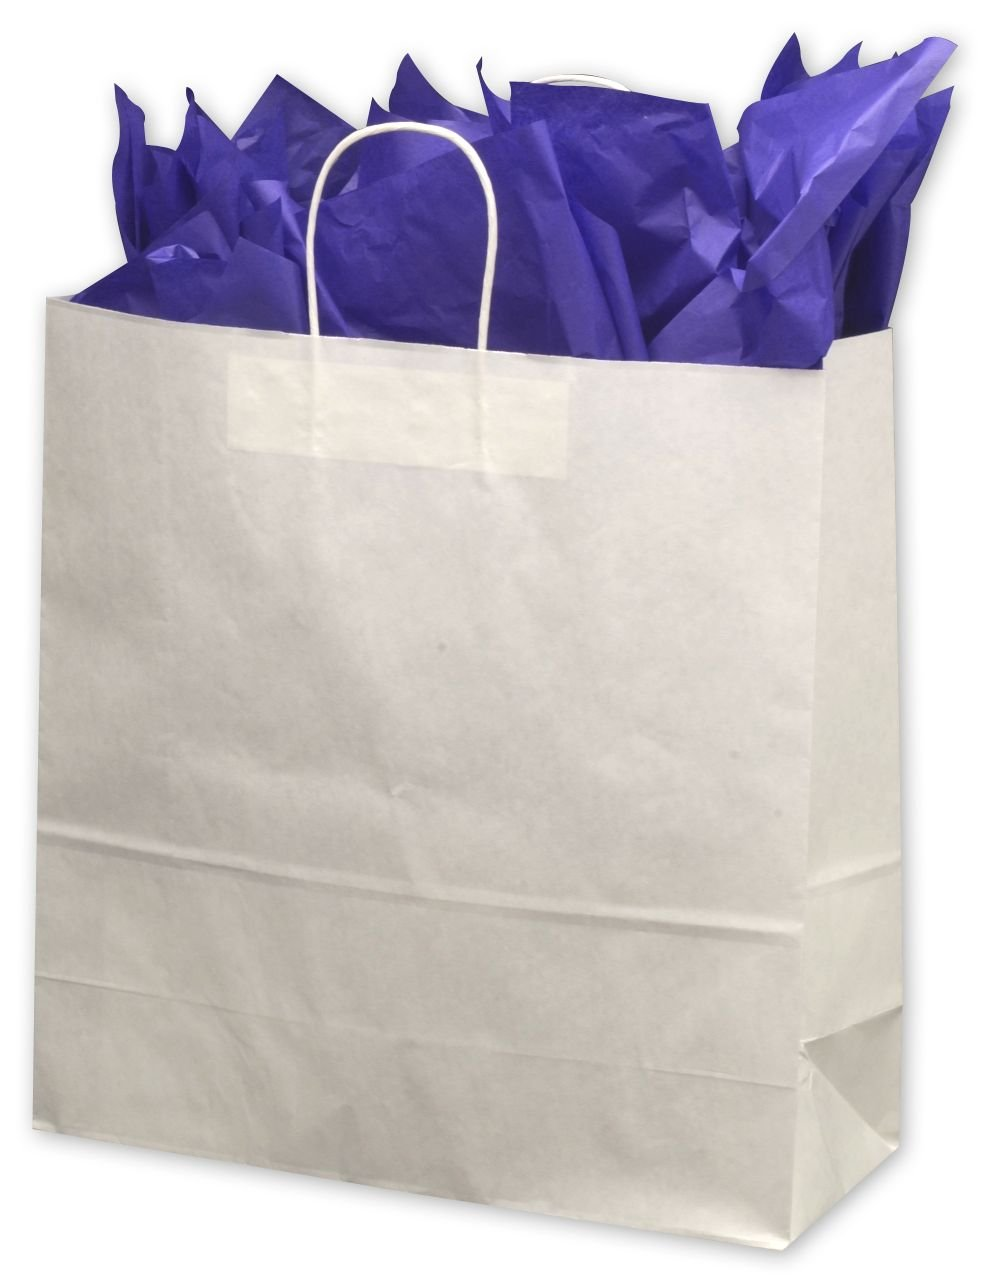 Solid Color Pattern Shopping Bags - White Paper Shoppers Jumbo, 18 x 7 x 19'' (200 Bags) - BOWS-14-180718-9M